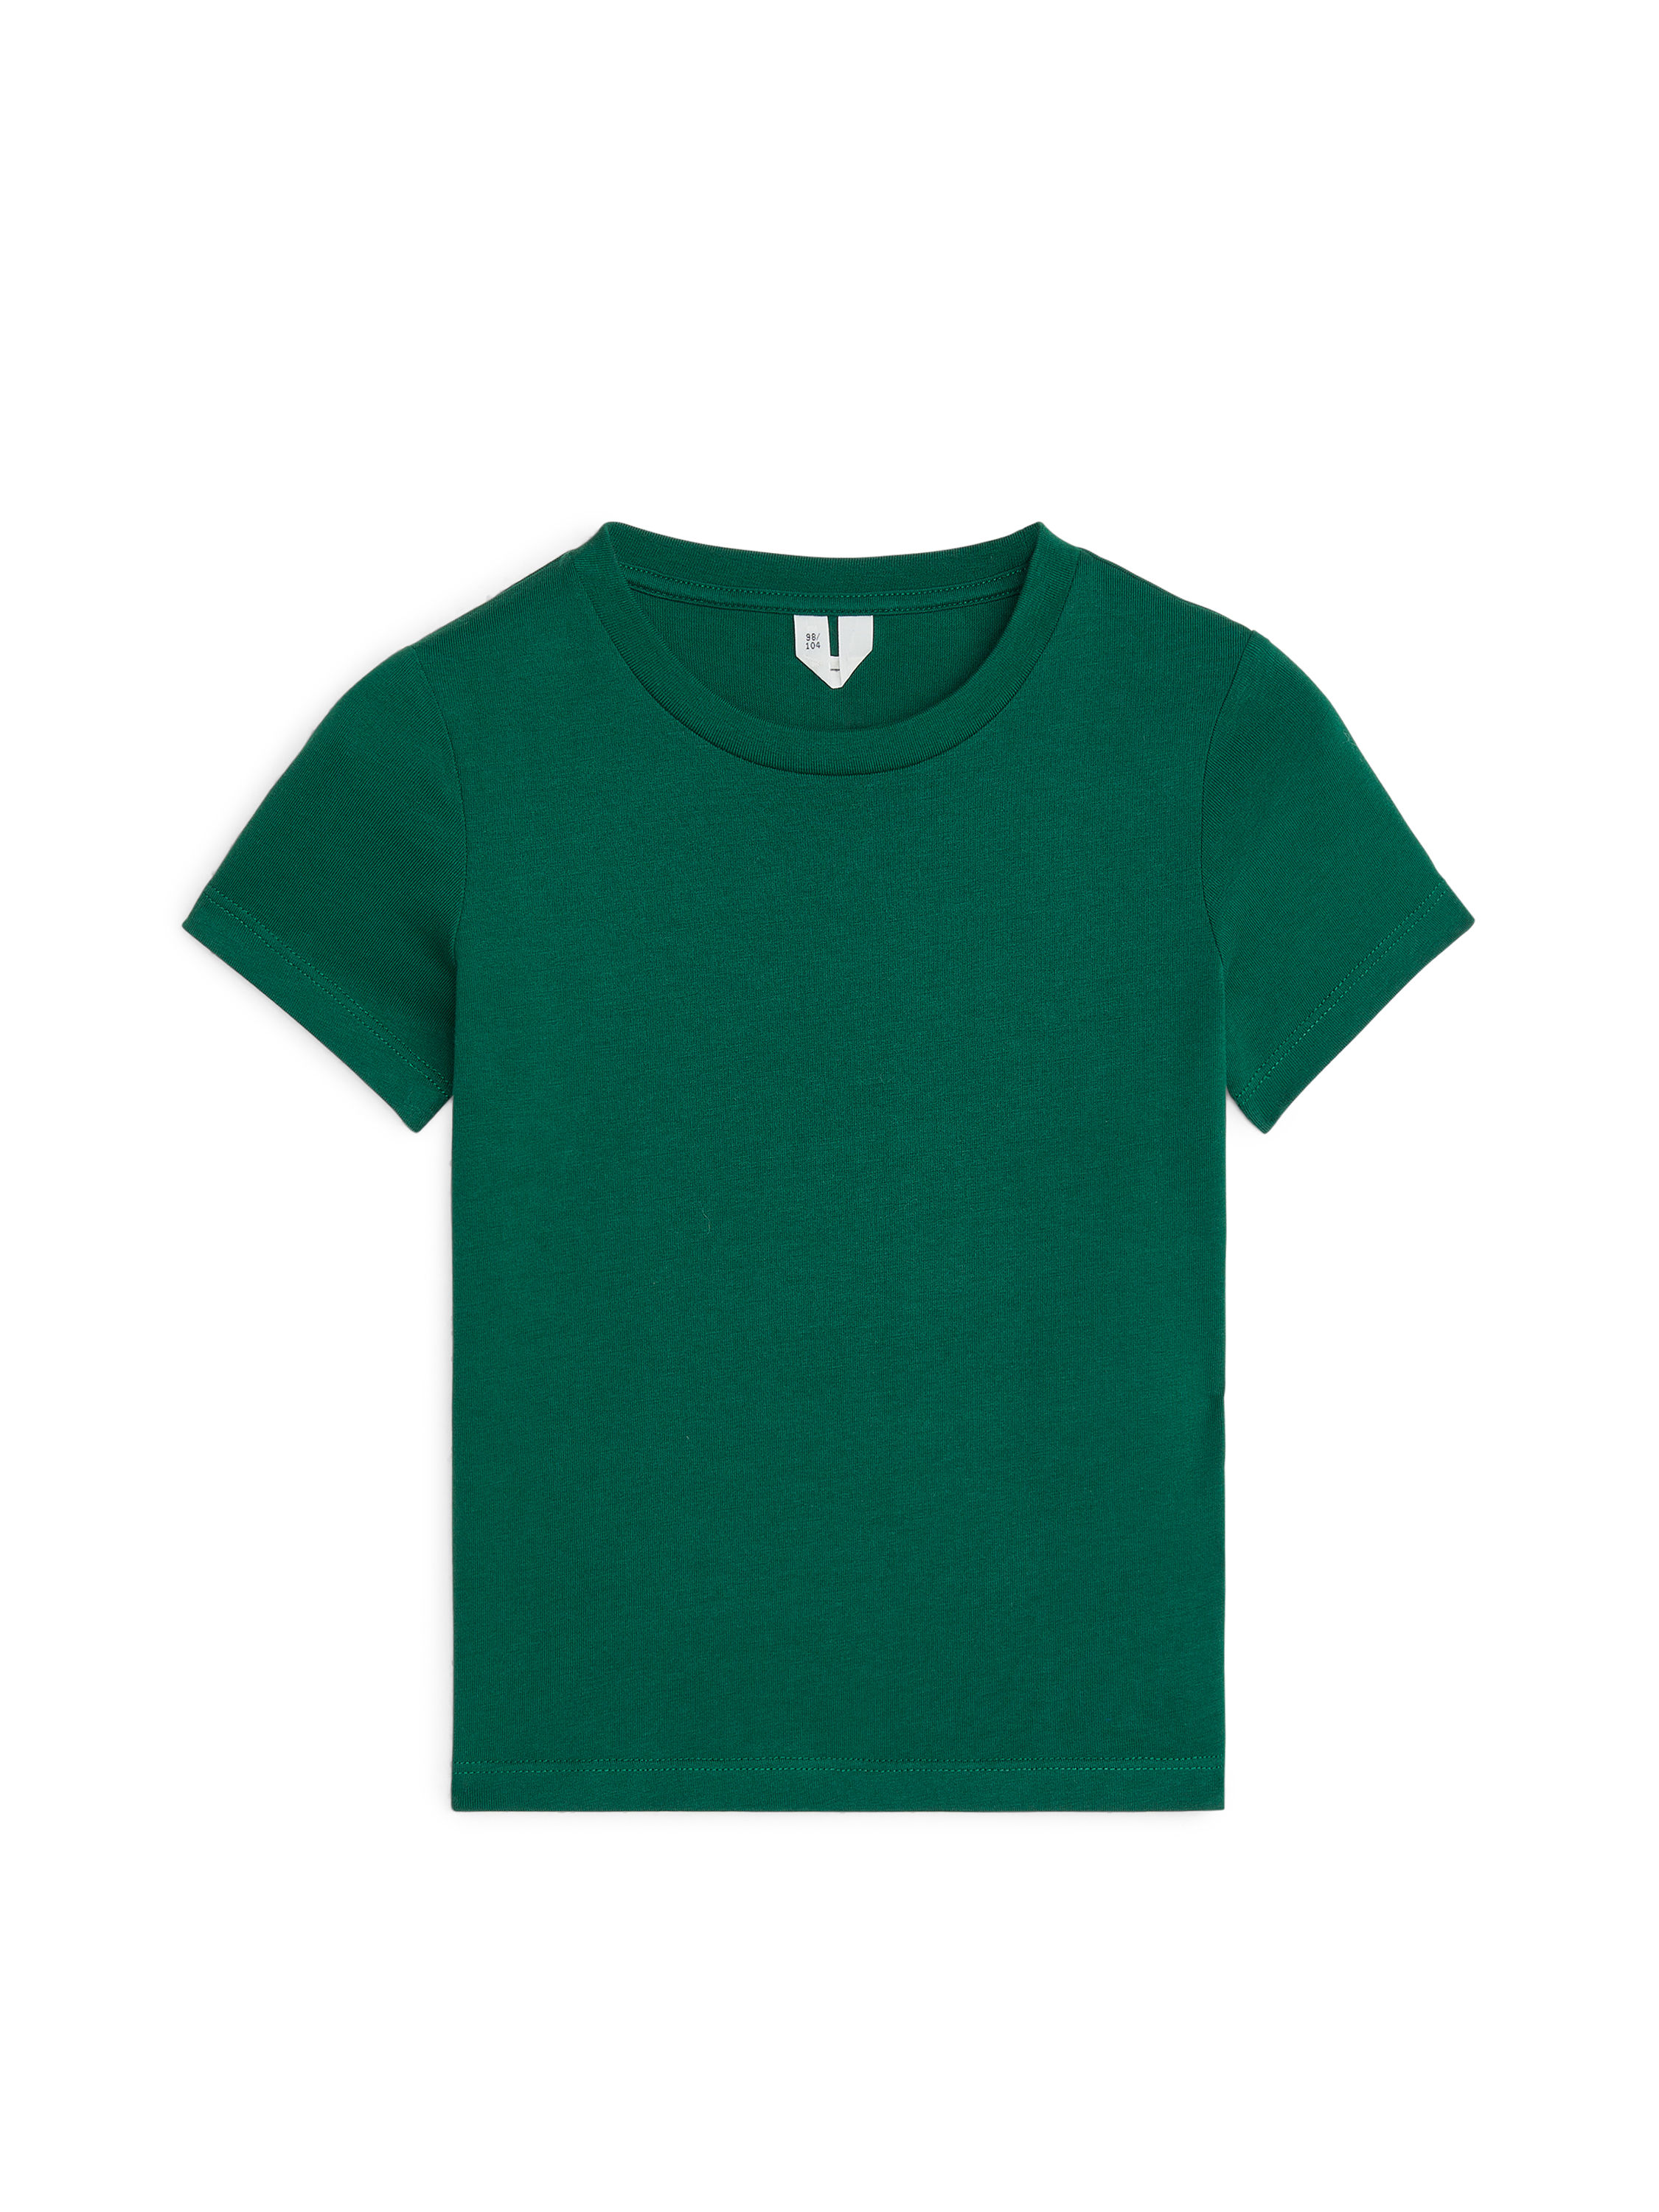 Fabric Swatch image of Arket crew-neck t-shirt in green